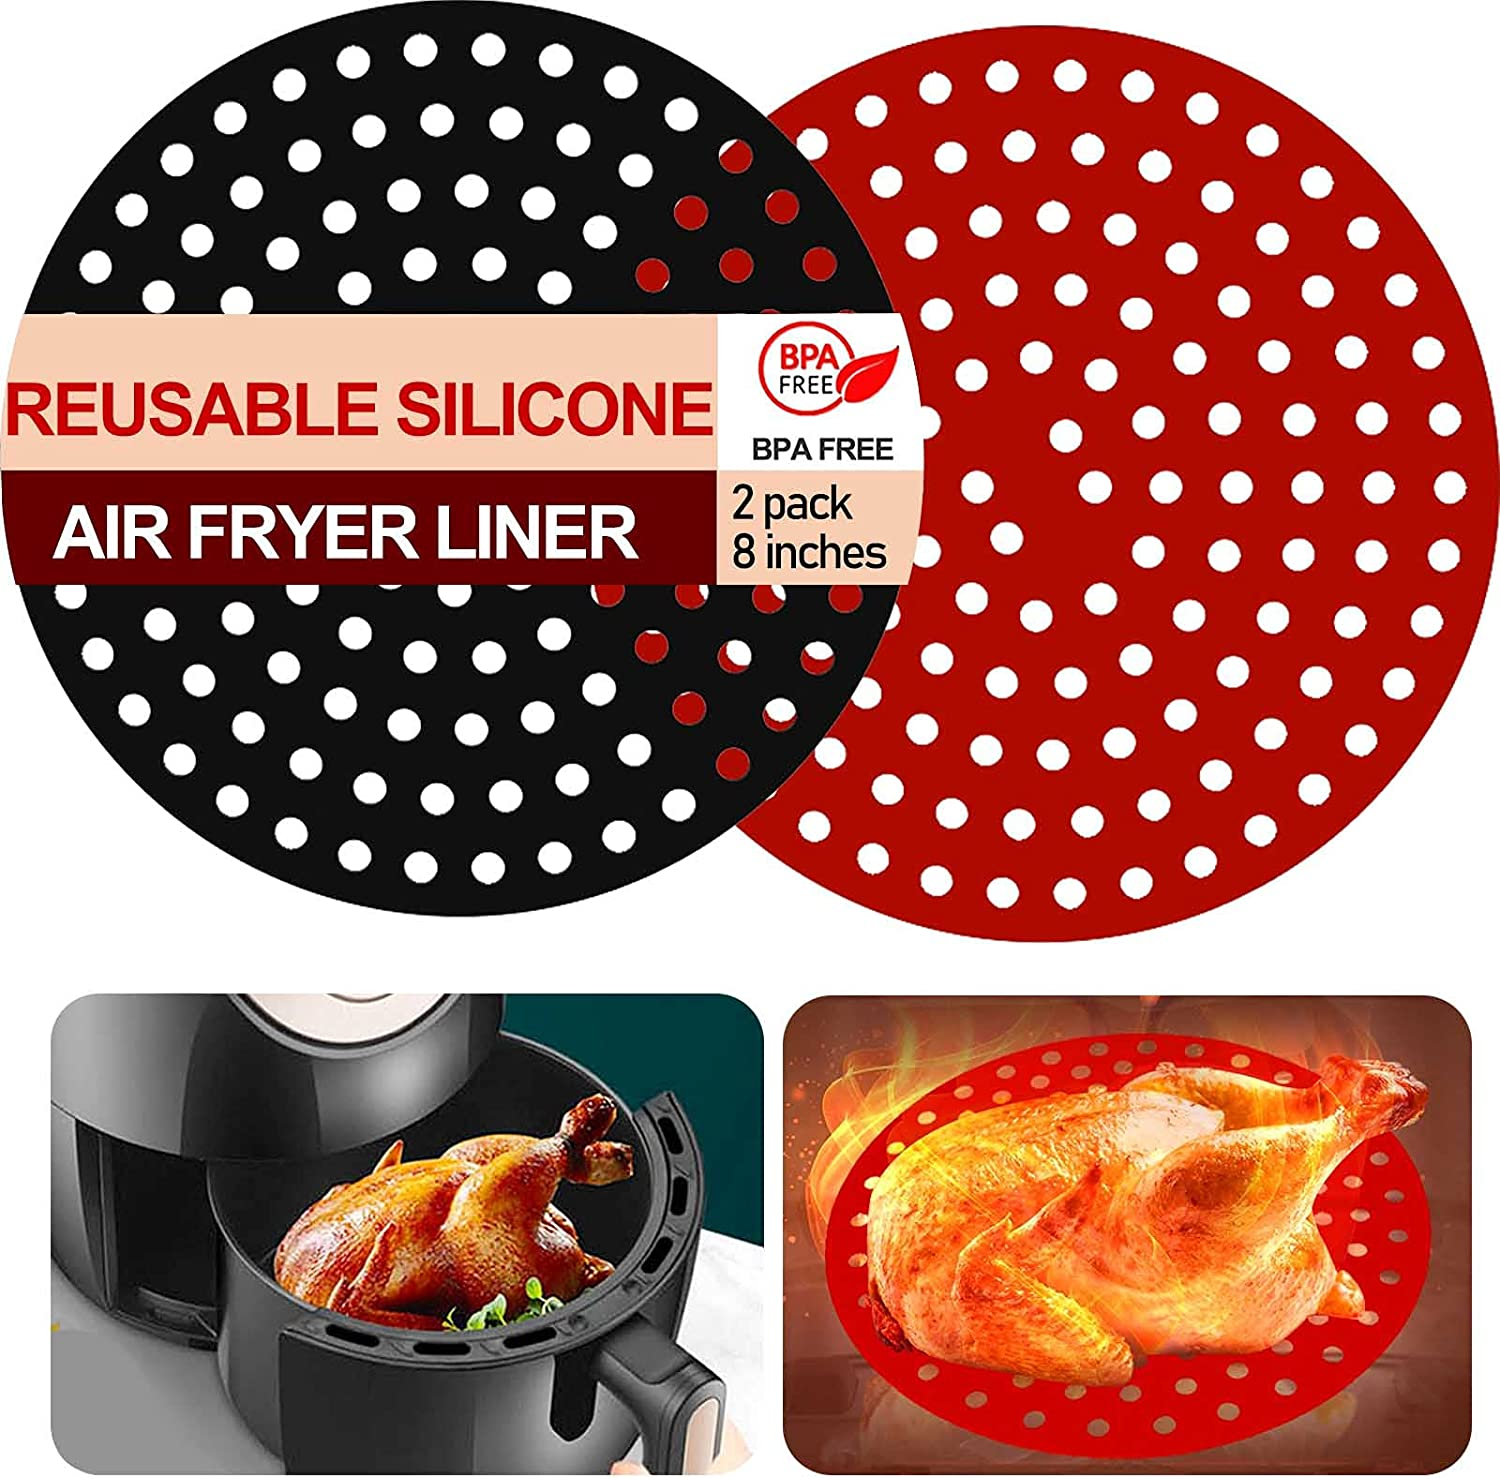 Connfiton Reusable Air Fryer Liners silicone,8 inch Round,Non-Stick Silicone Air Fryer Basket Mats,Air Fryer Accessories For Ninja,Gourmia,Power XL,GoWise,Chefman,NuWave,and More,BPA Free -2 Pcs